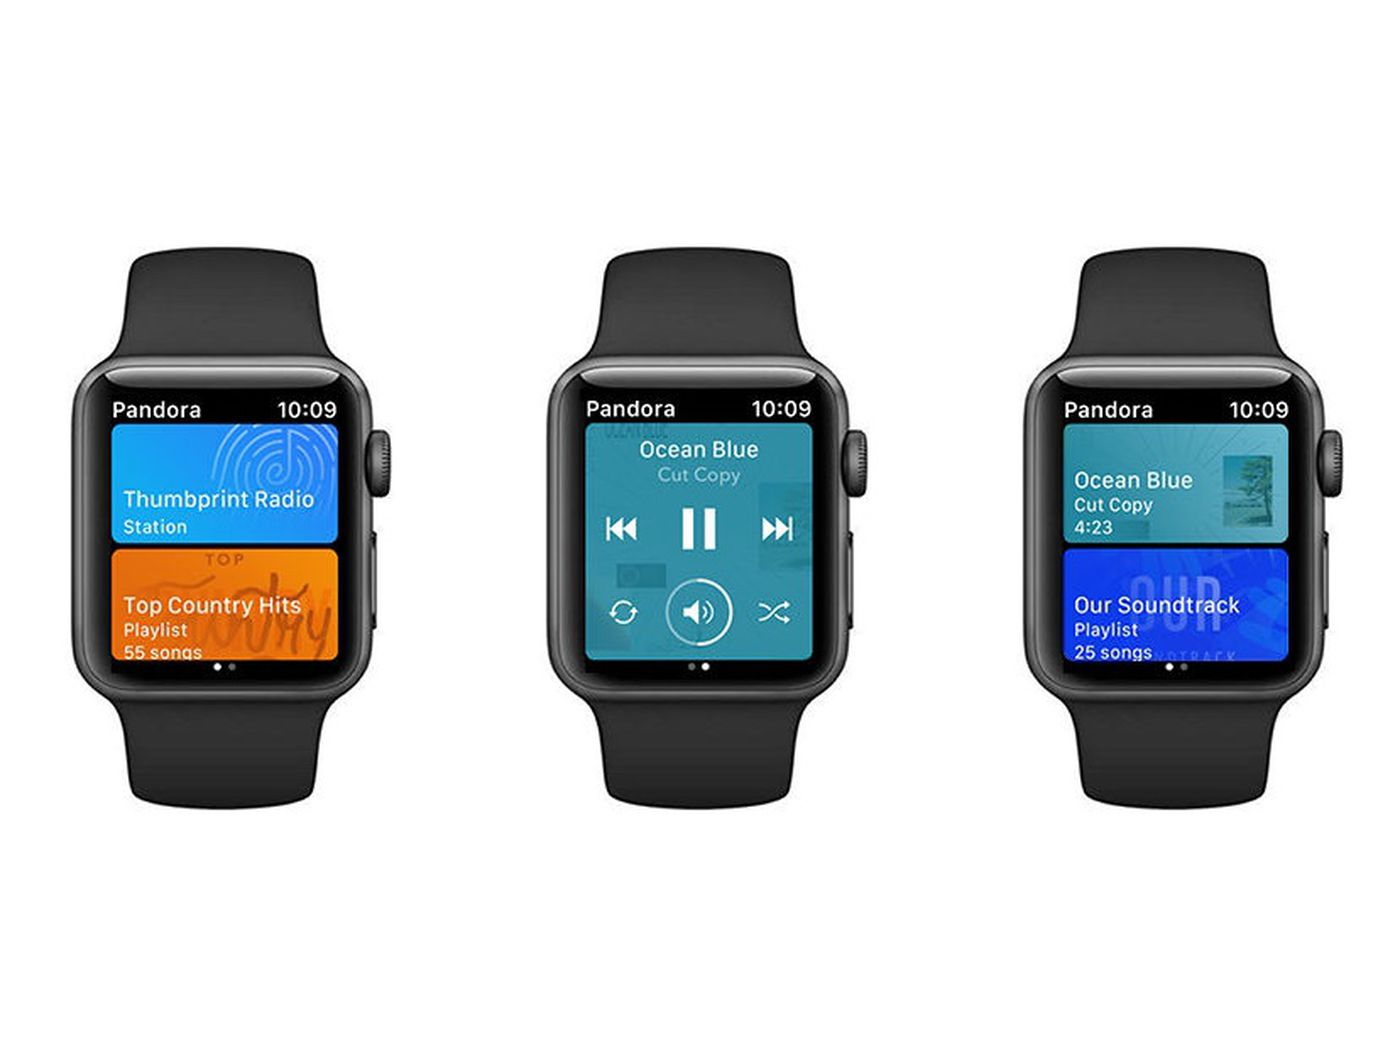 Pandora beats Spotify to offline playback on the Apple Watch - The Verge